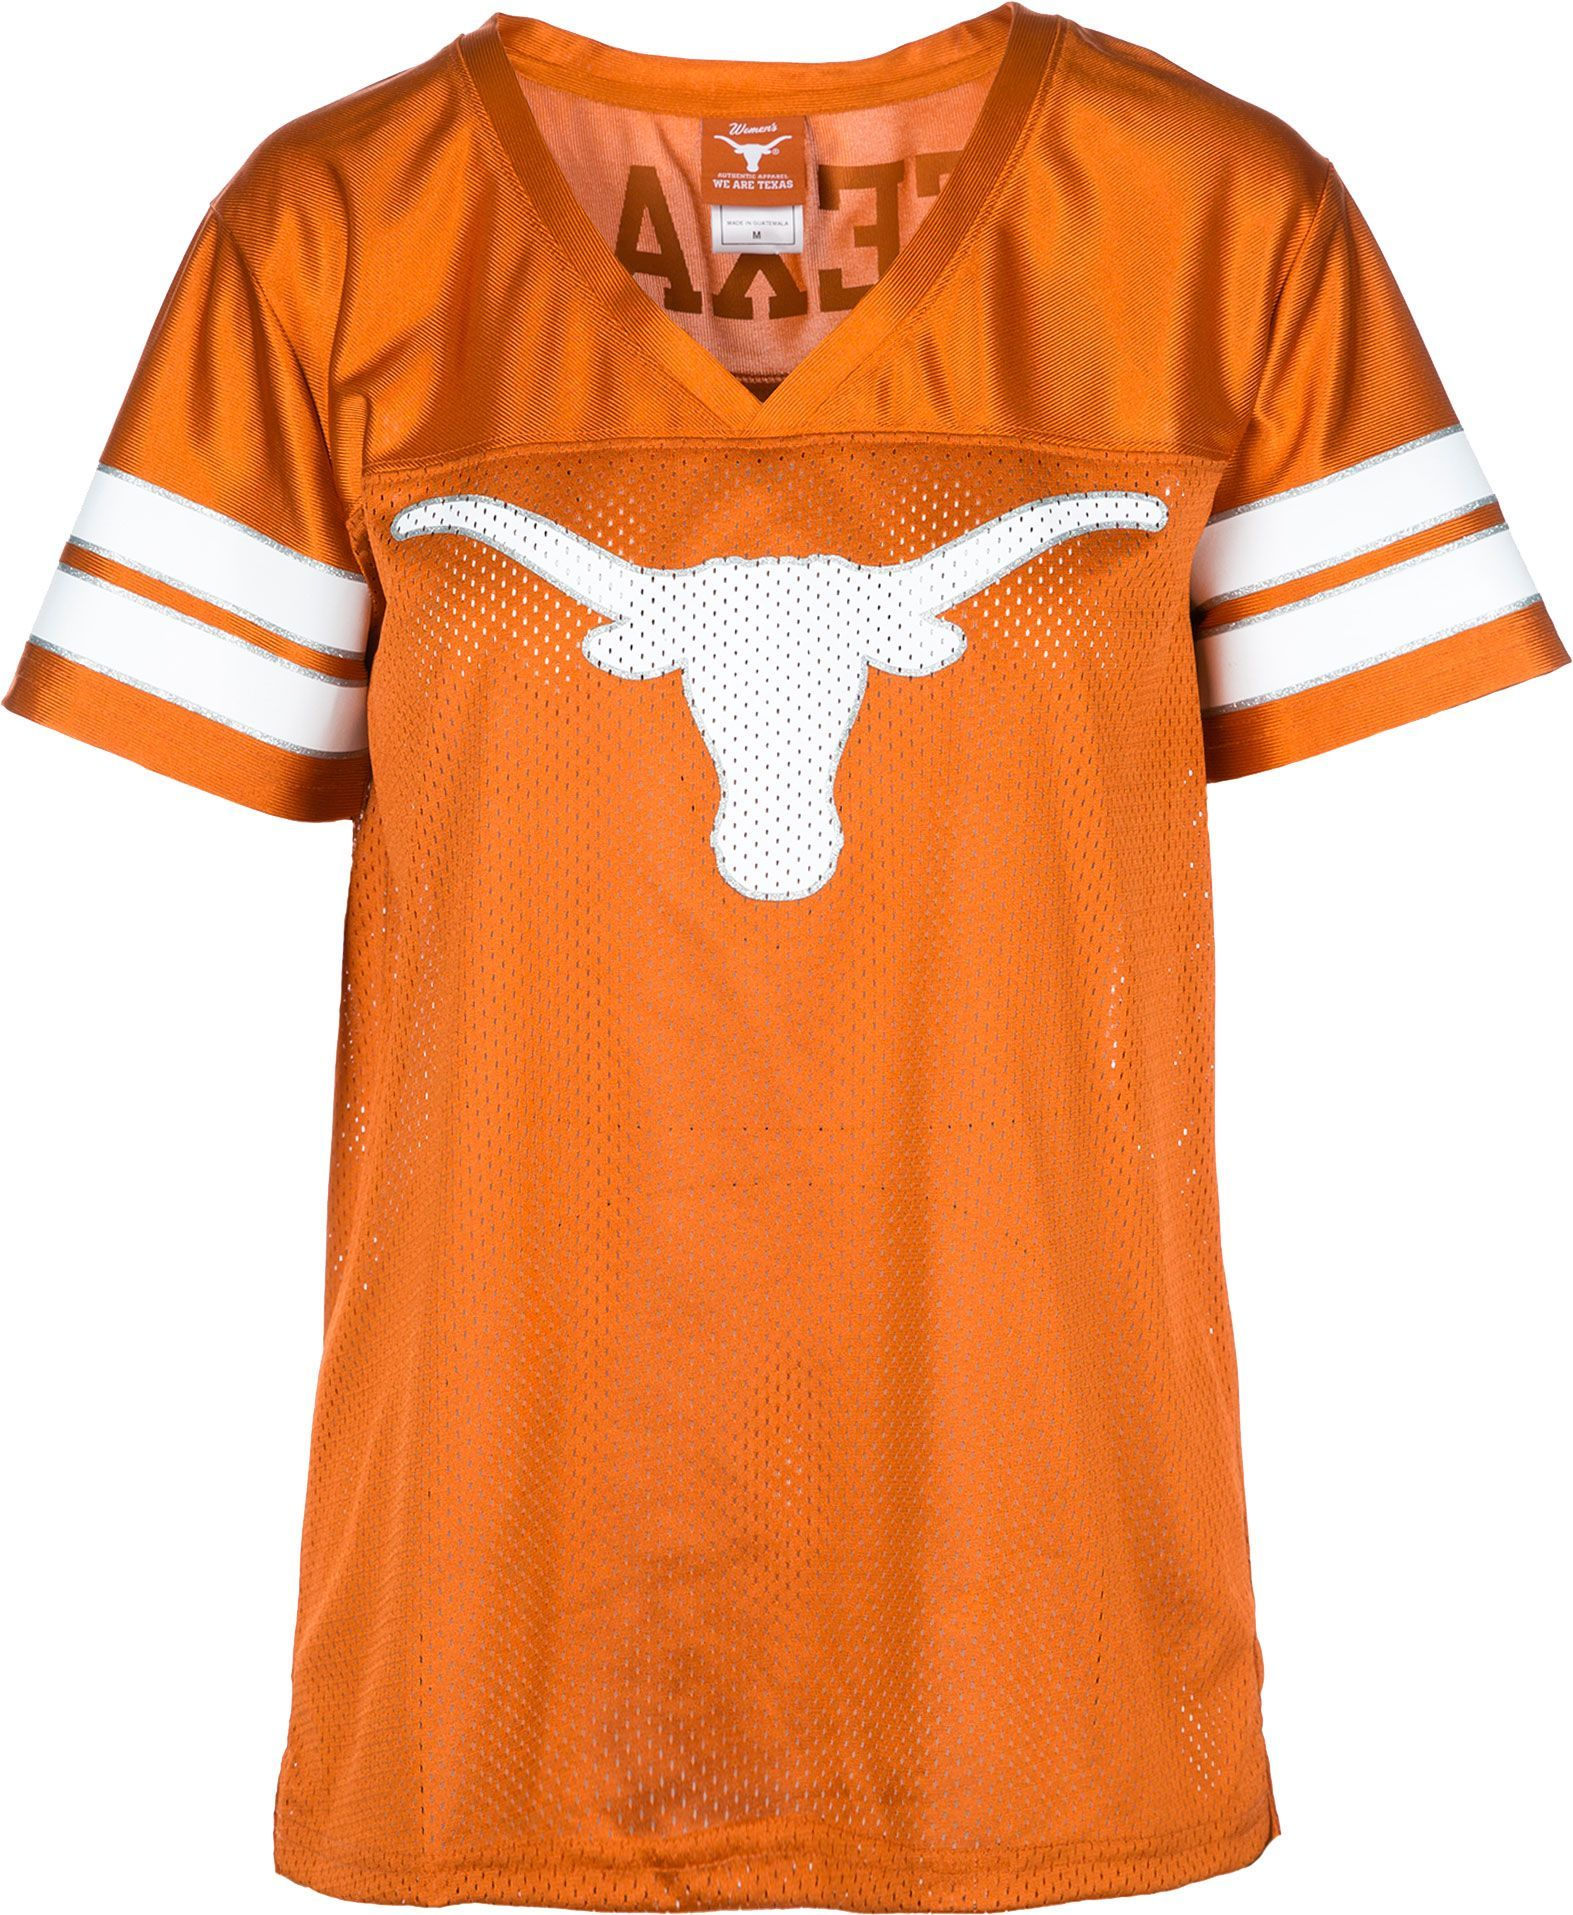 new product b1c7d 8ad0f University of Texas Authentic Apparel Women's Texas ...